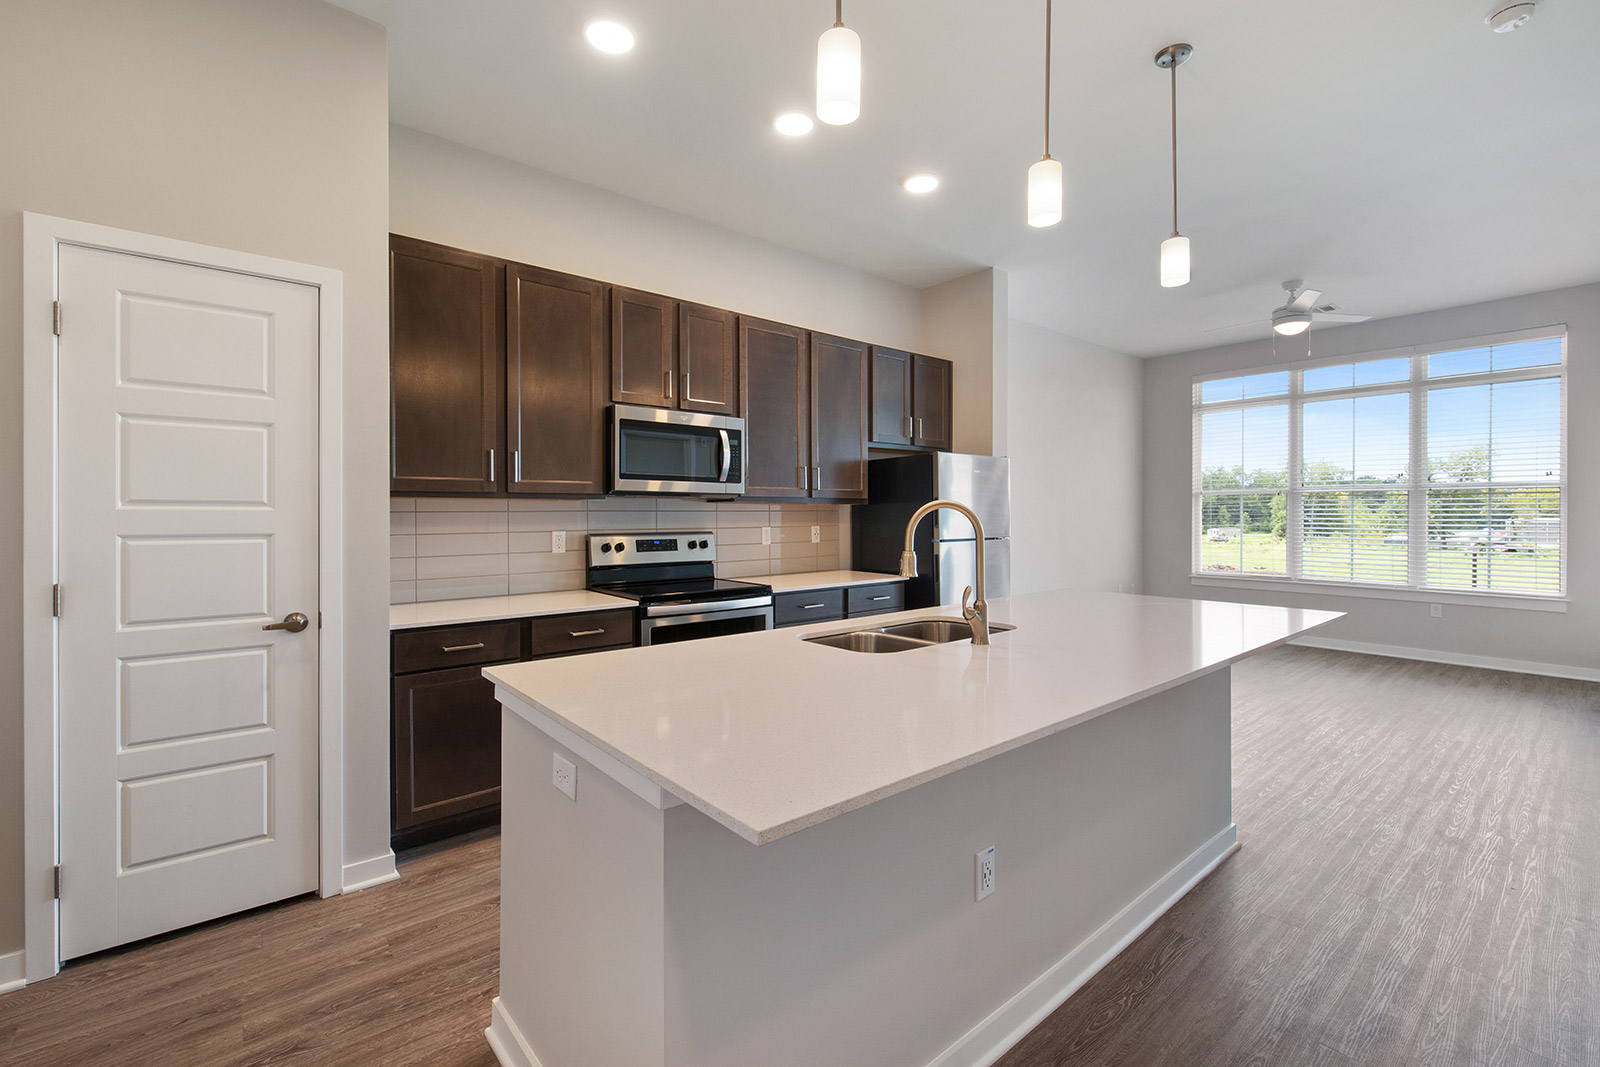 Kitchens at Sawgrass Point in Gonzales, Louisiana